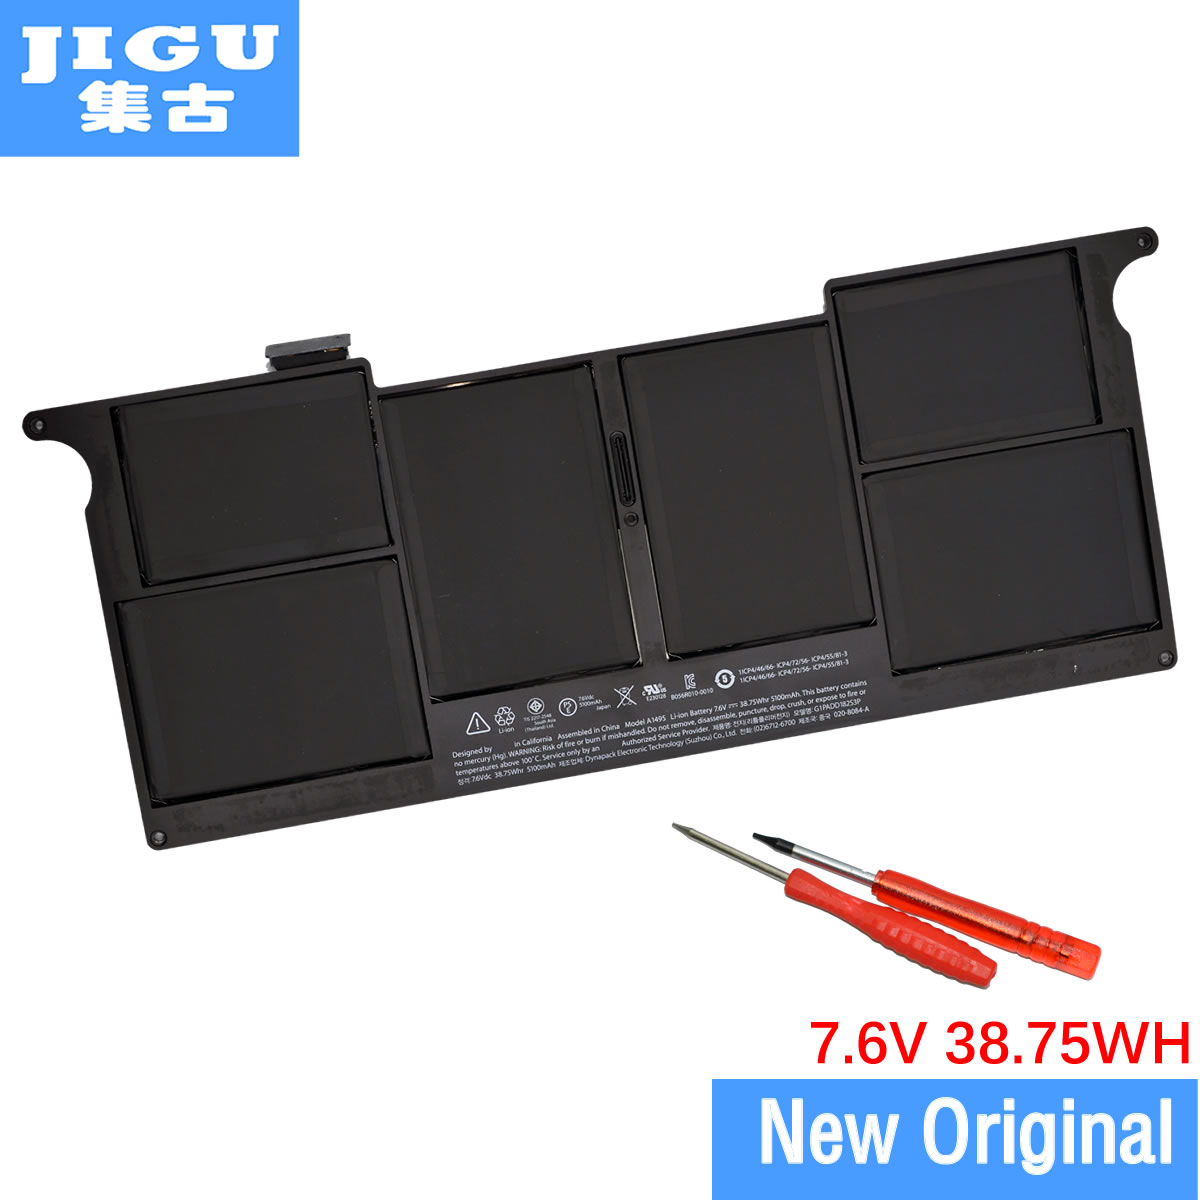 JIGU A1495 Originele laptopbatterij voor APPLE voor MacBook Air 11 - Notebook accessoires - Foto 1